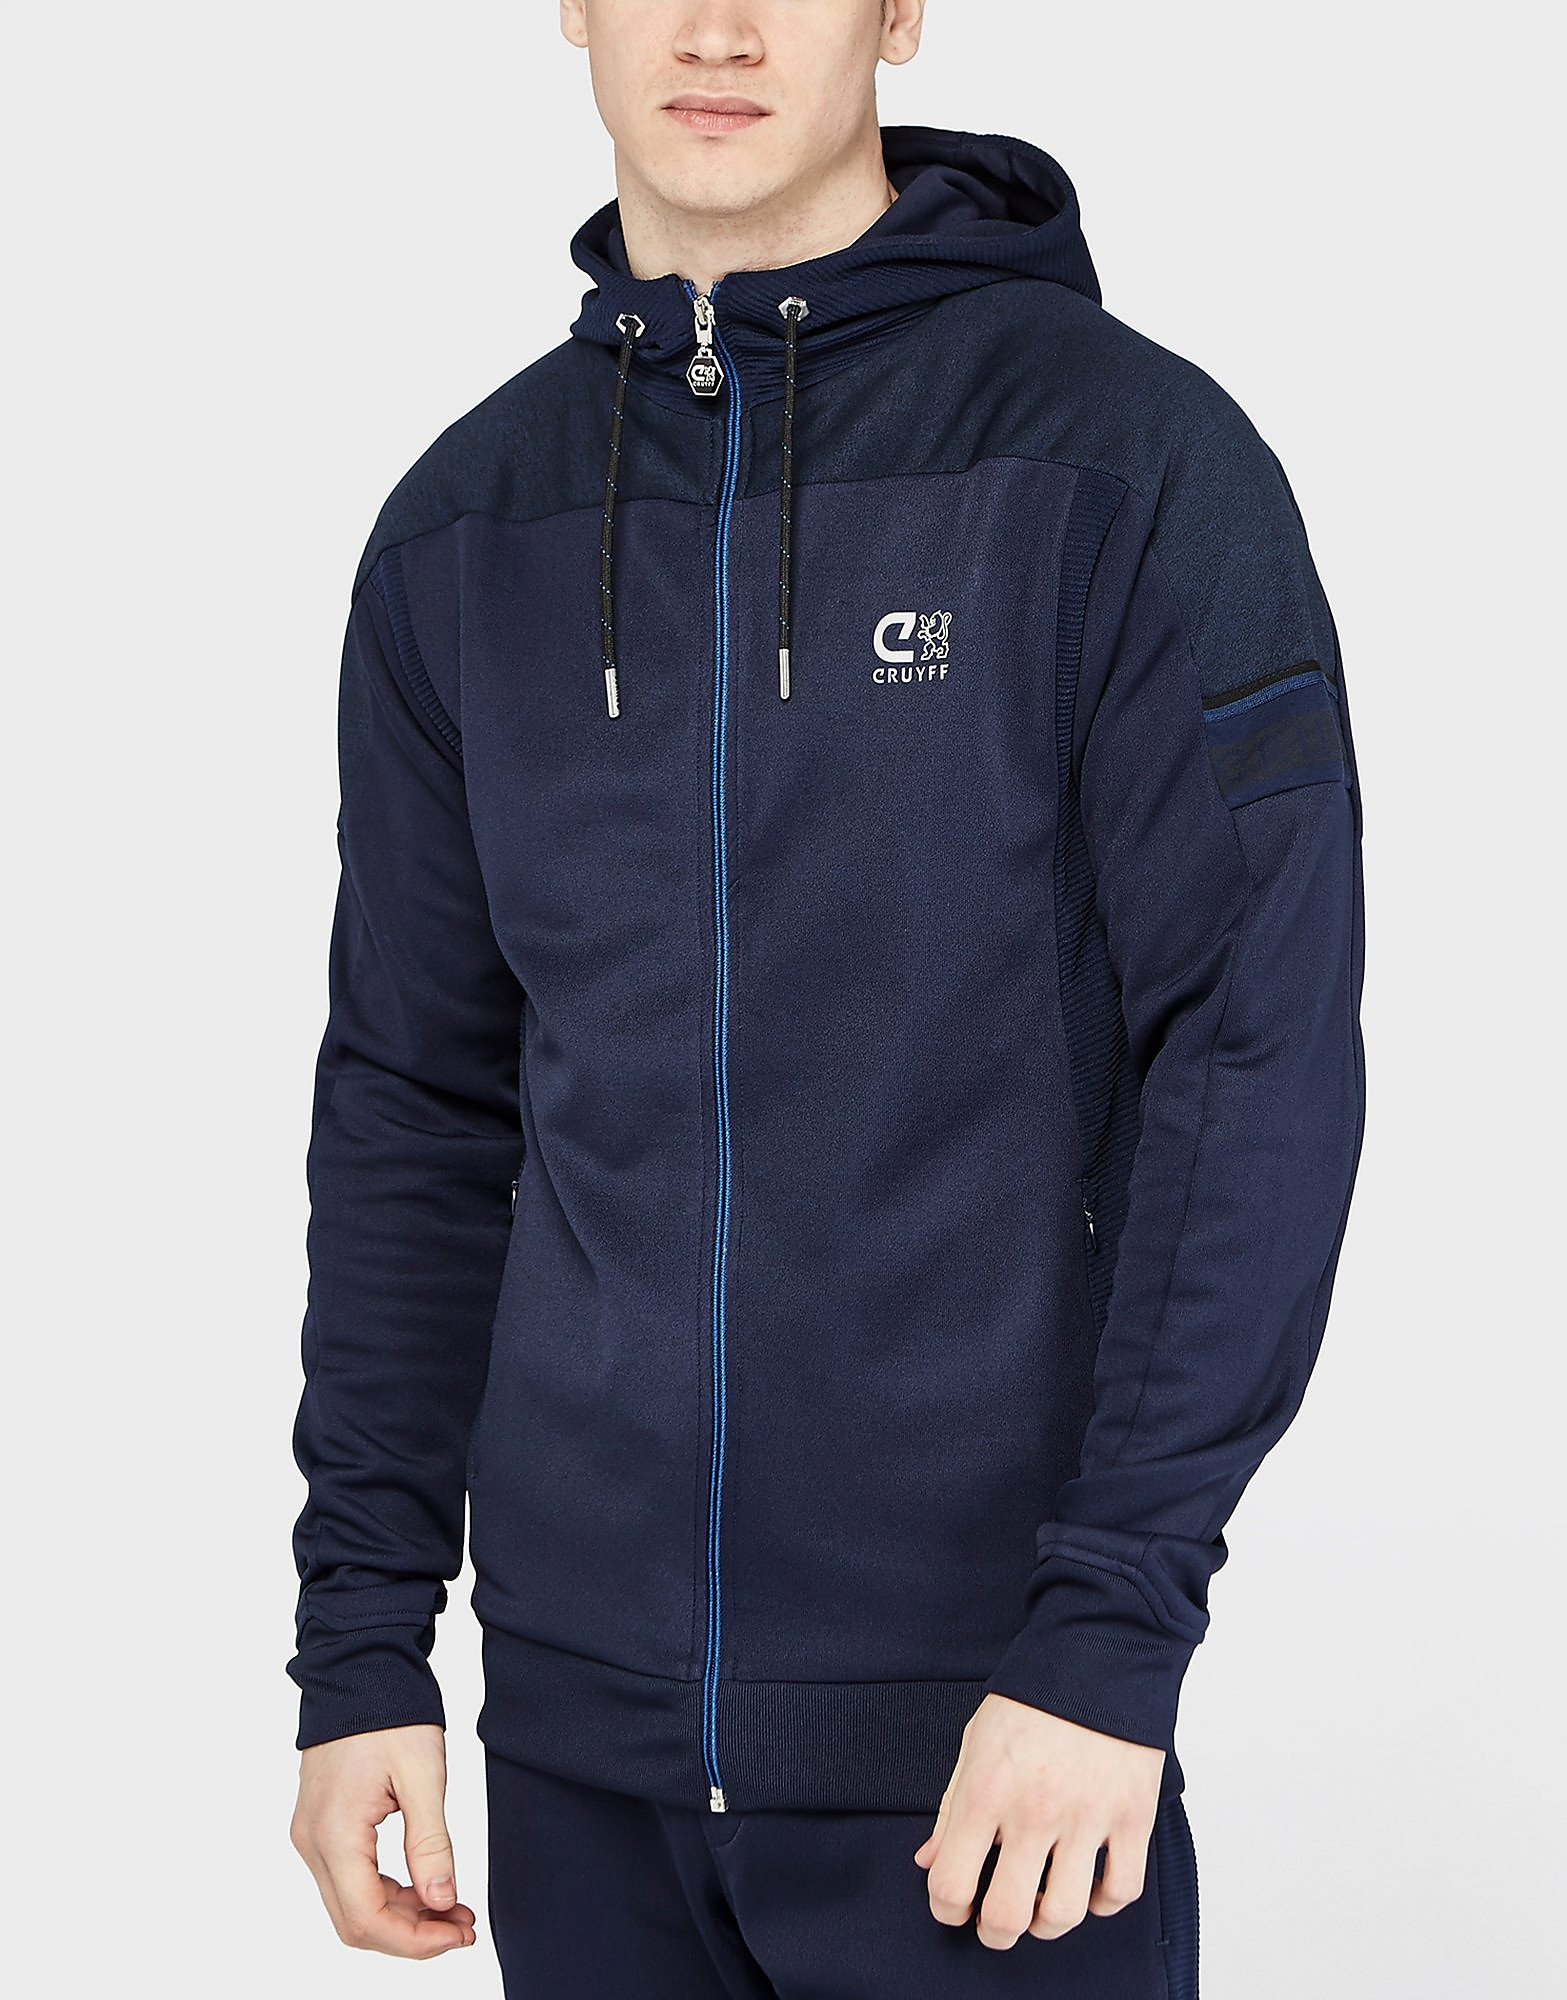 Cruyff Lawson Hooded Jacket